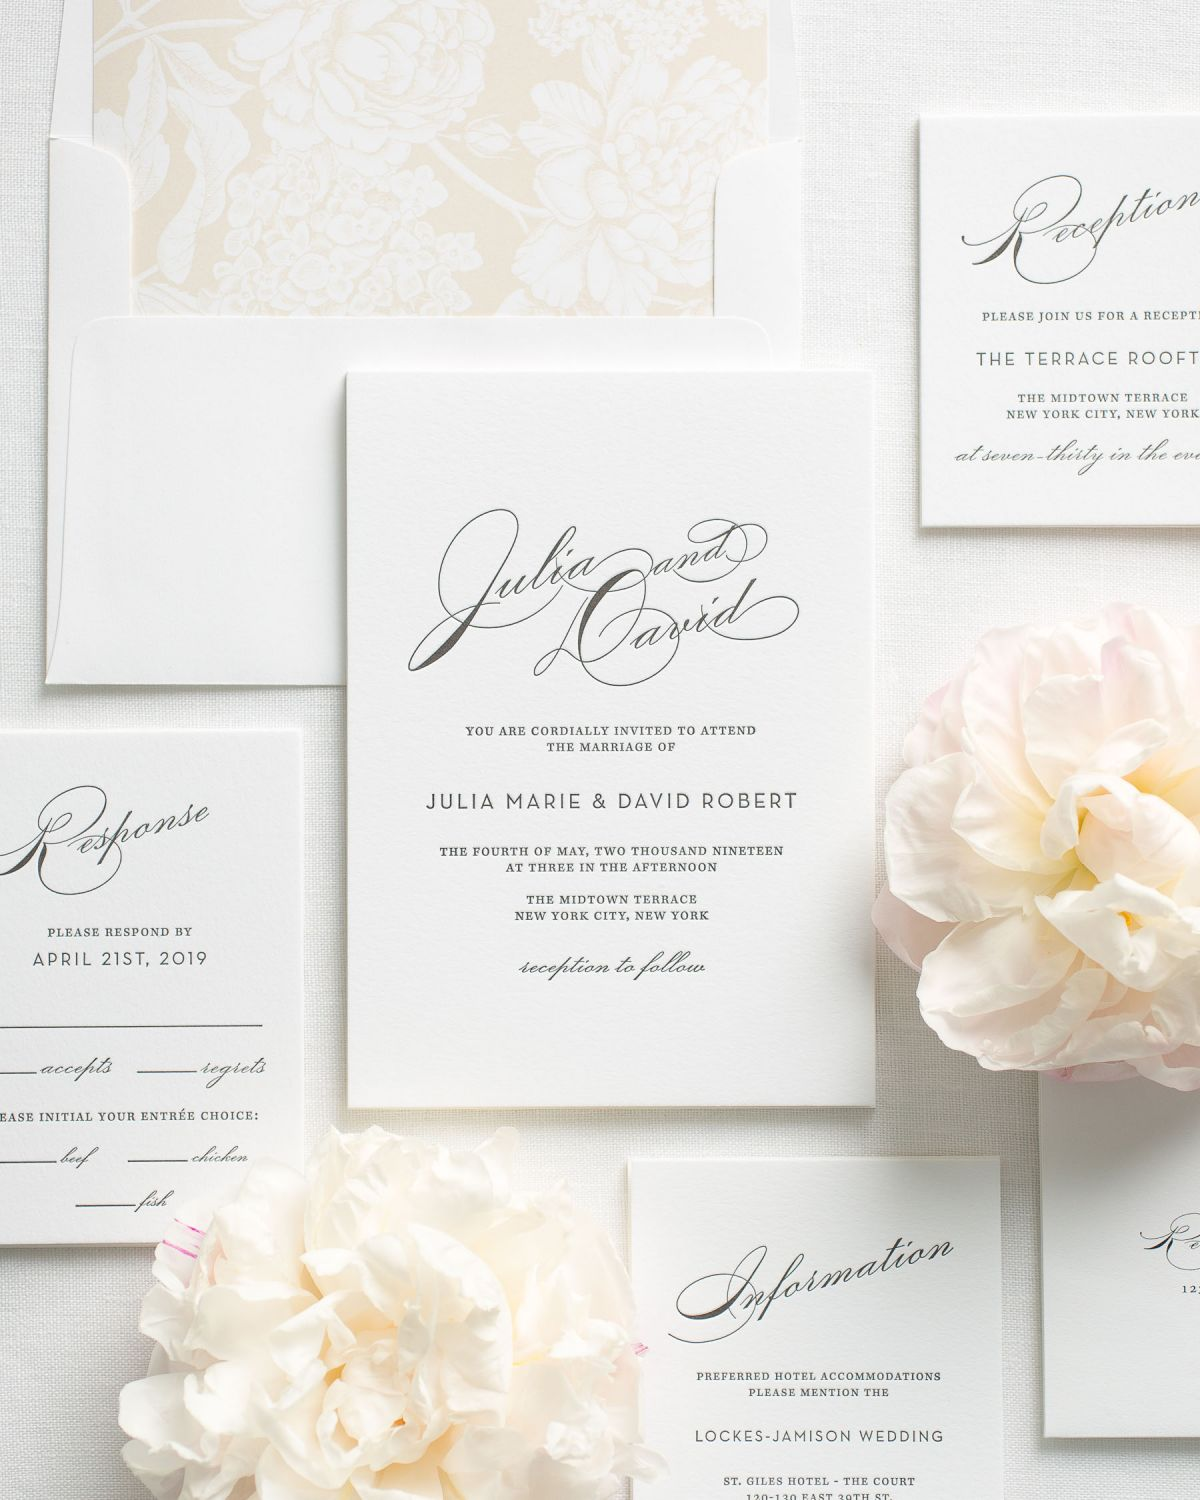 Champagne Wedding Invitation Suite with Letterpress Printing